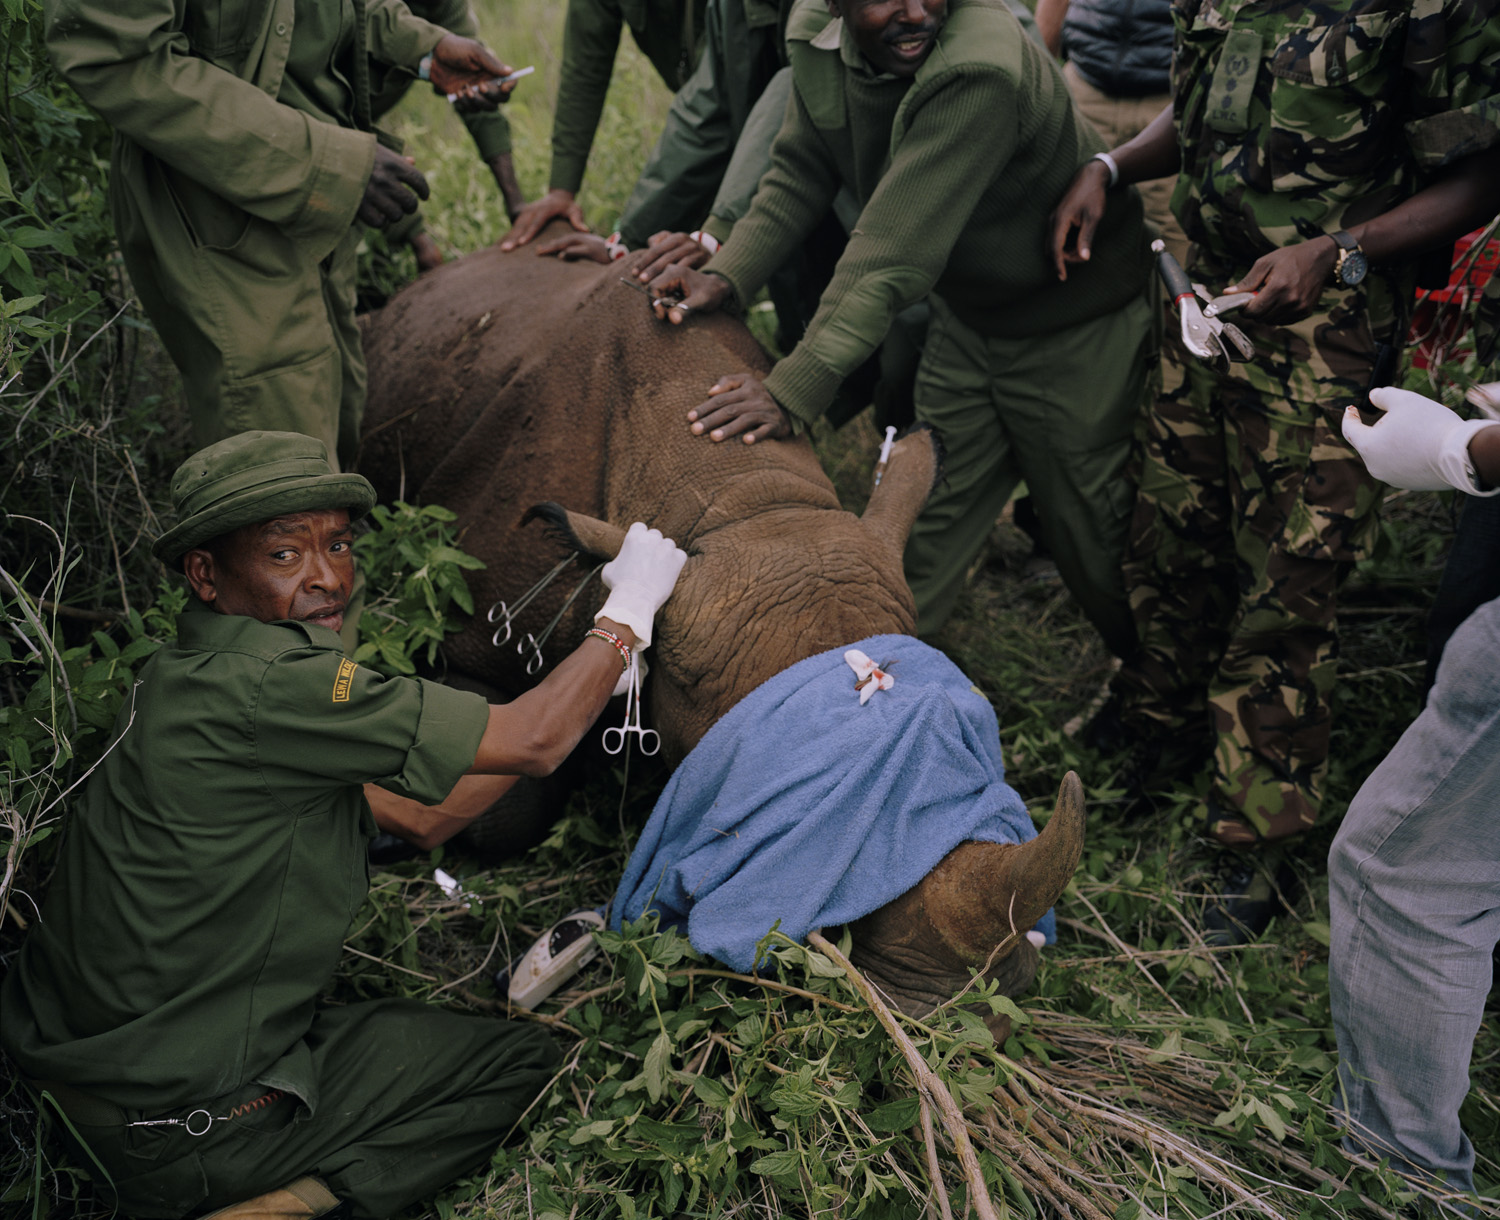 A sedated black rhino is ear notched for identification purposes, Lewa Wildlife Conservancy, northern Kenya.